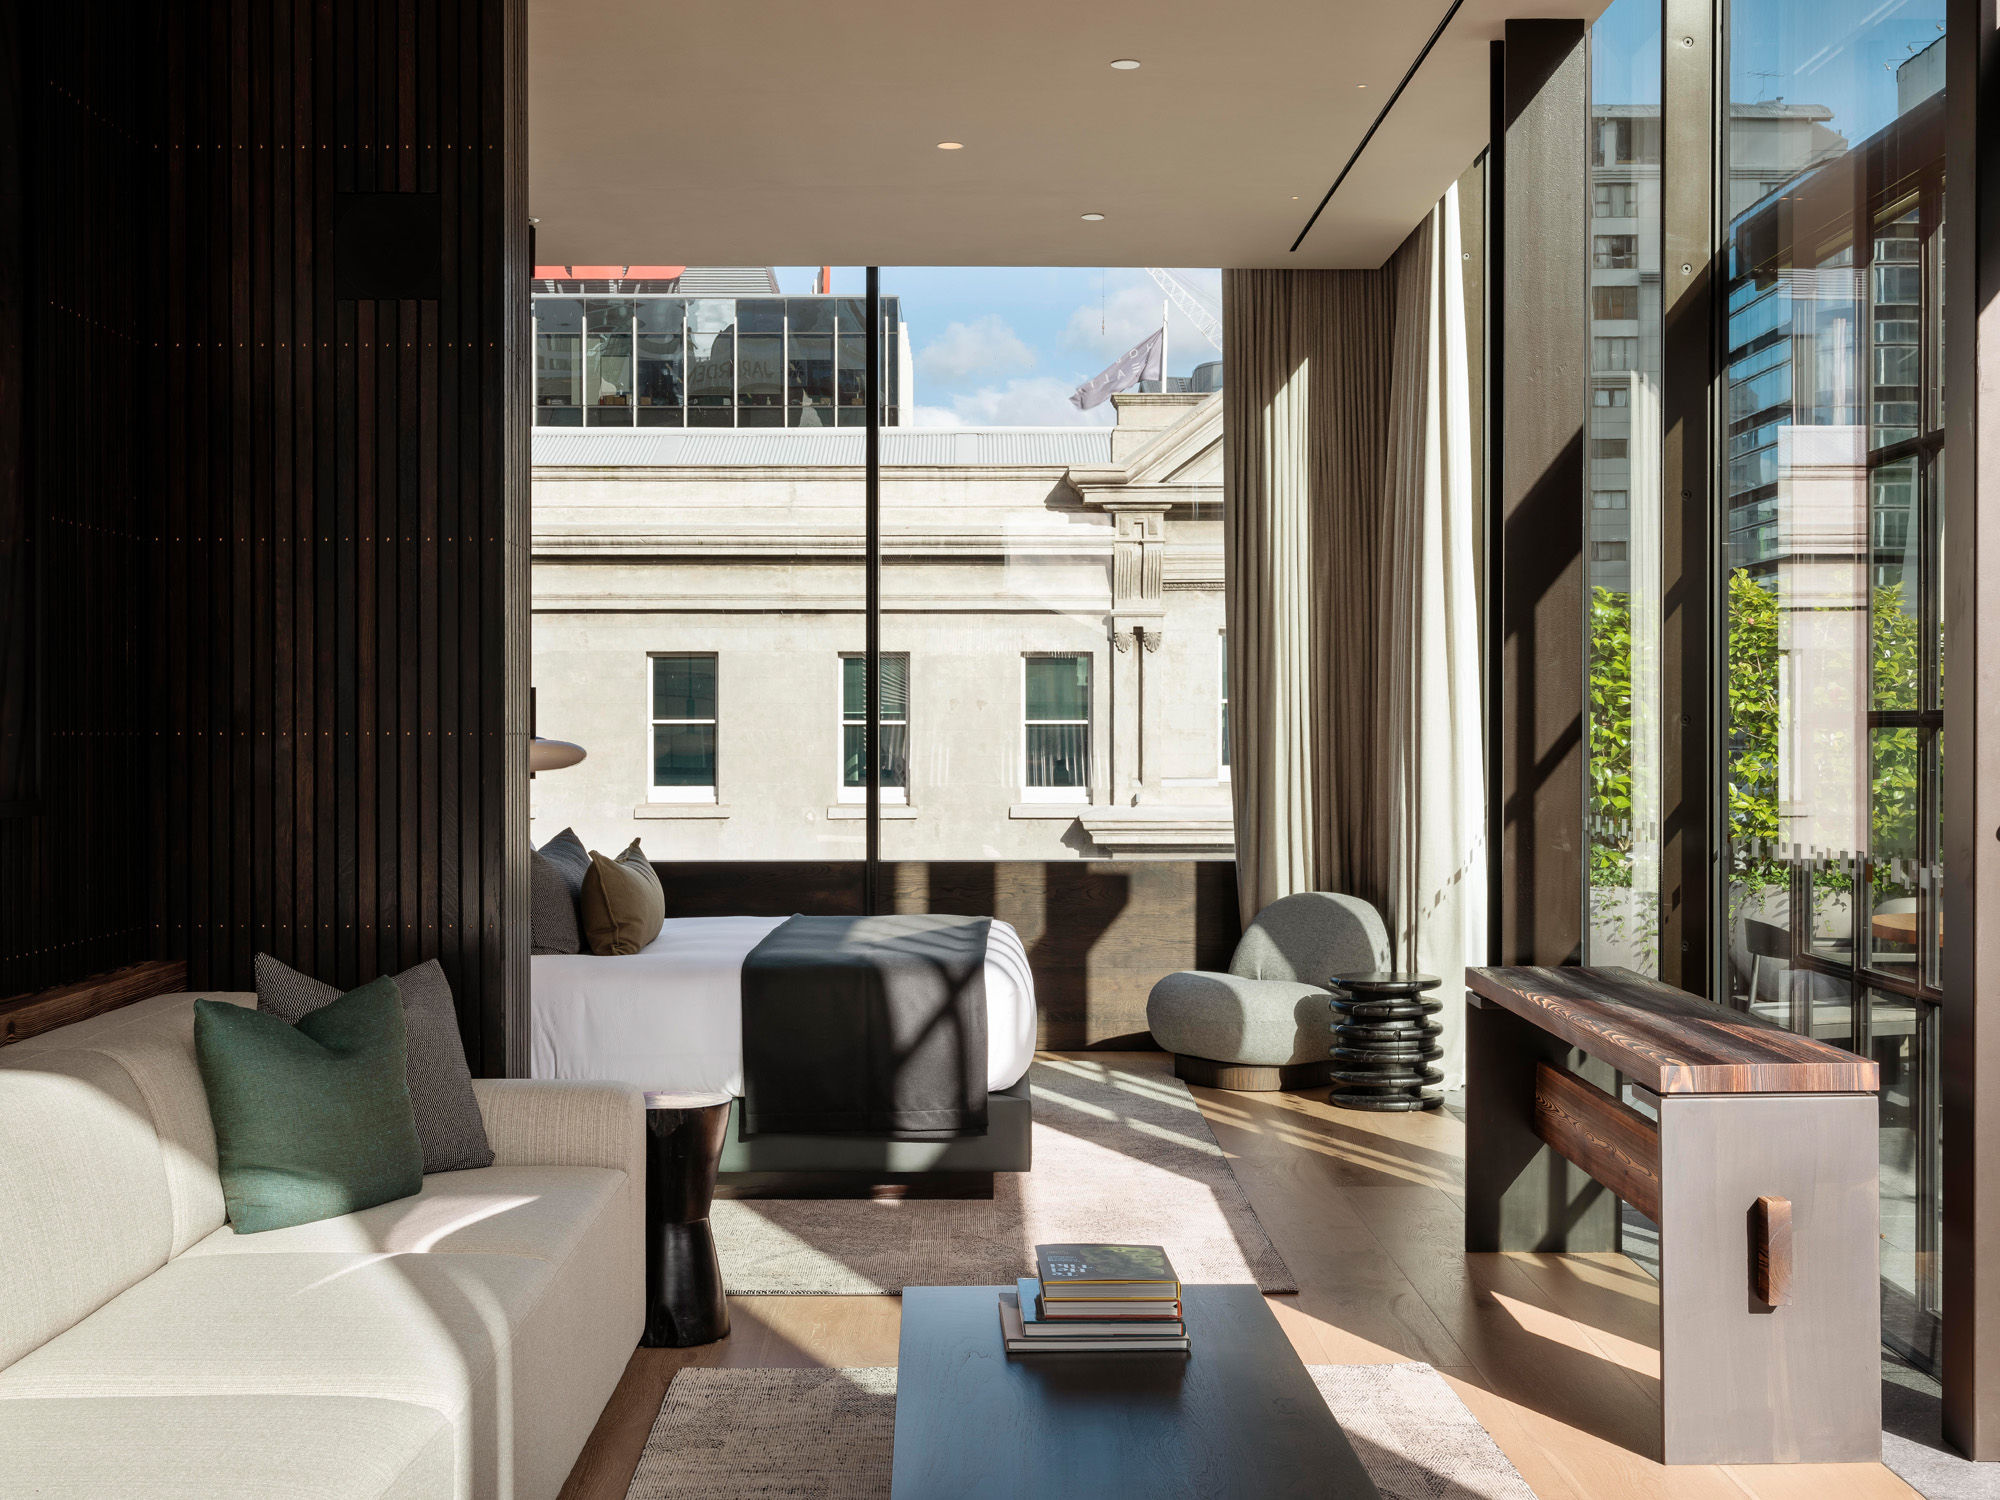 Poraenui suite with bed, lounge and outdoor terrace - The Landing Suites at The Hotel Britomart